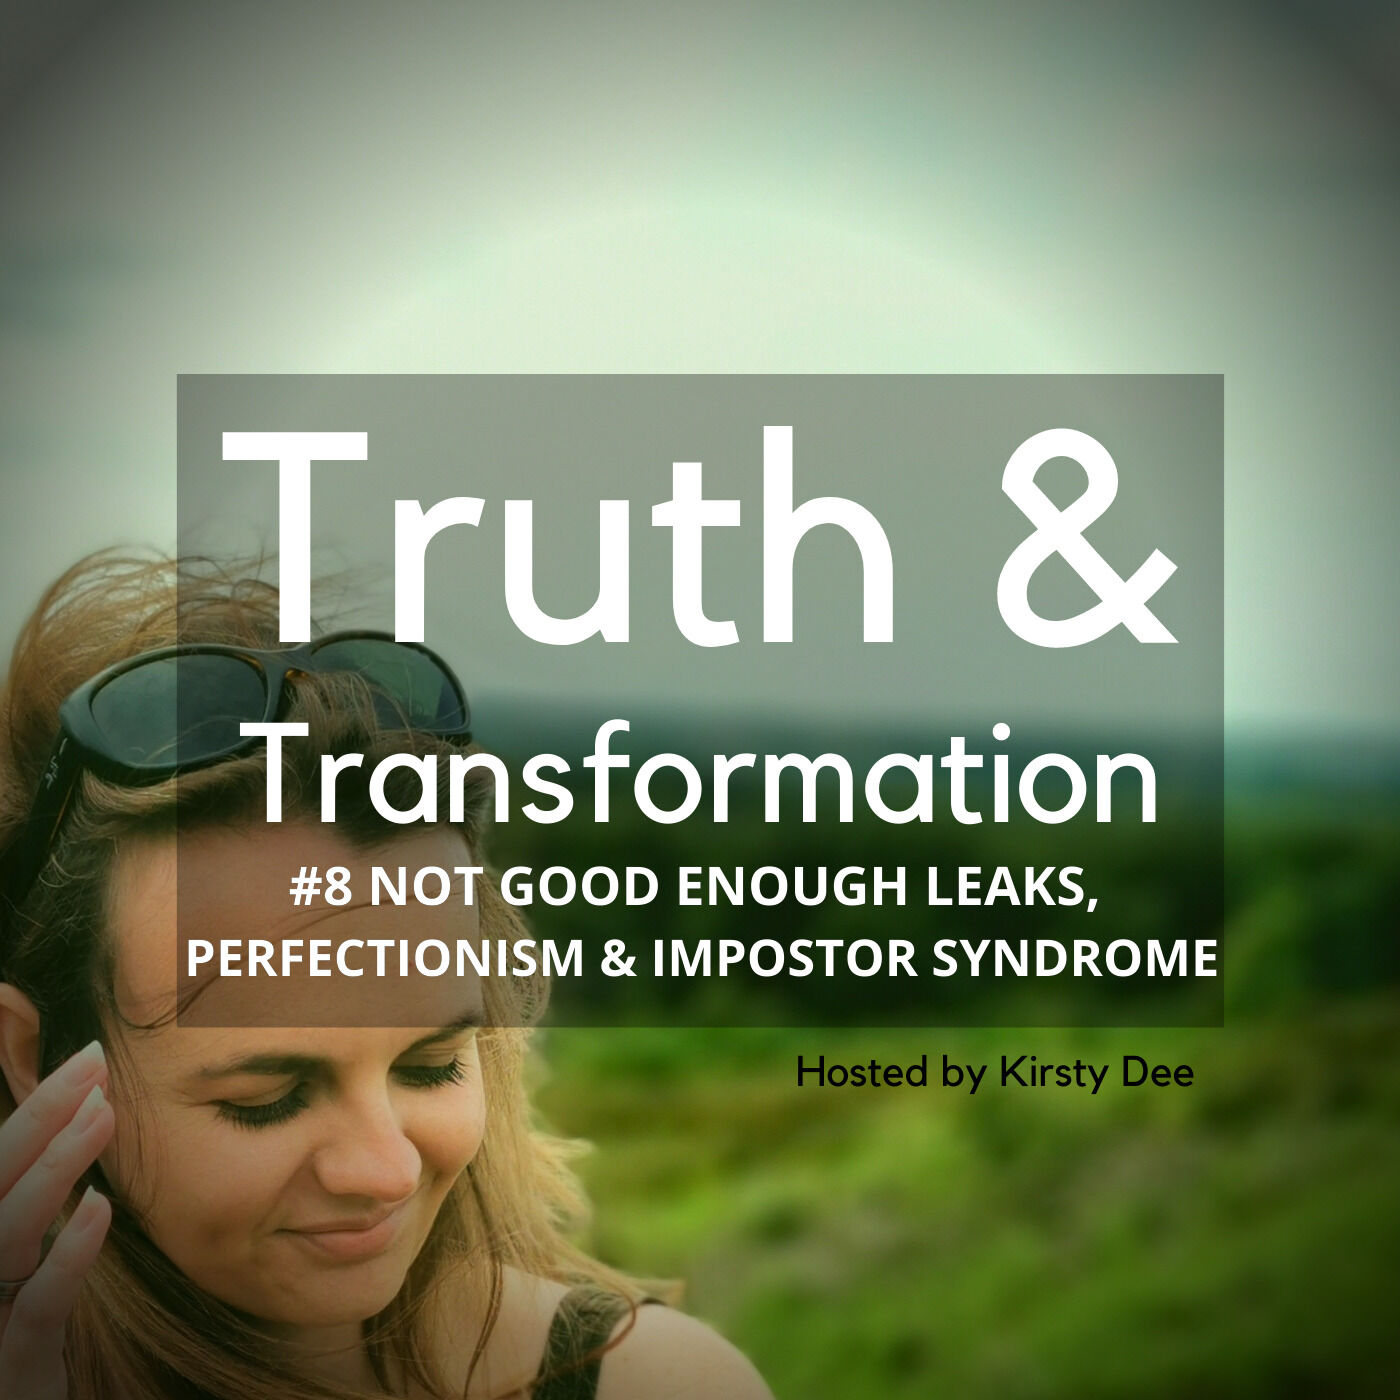 #8 NOT GOOD ENOUGH LEAKS, PERFECTIONISM & IMPOSTOR SYNDROME